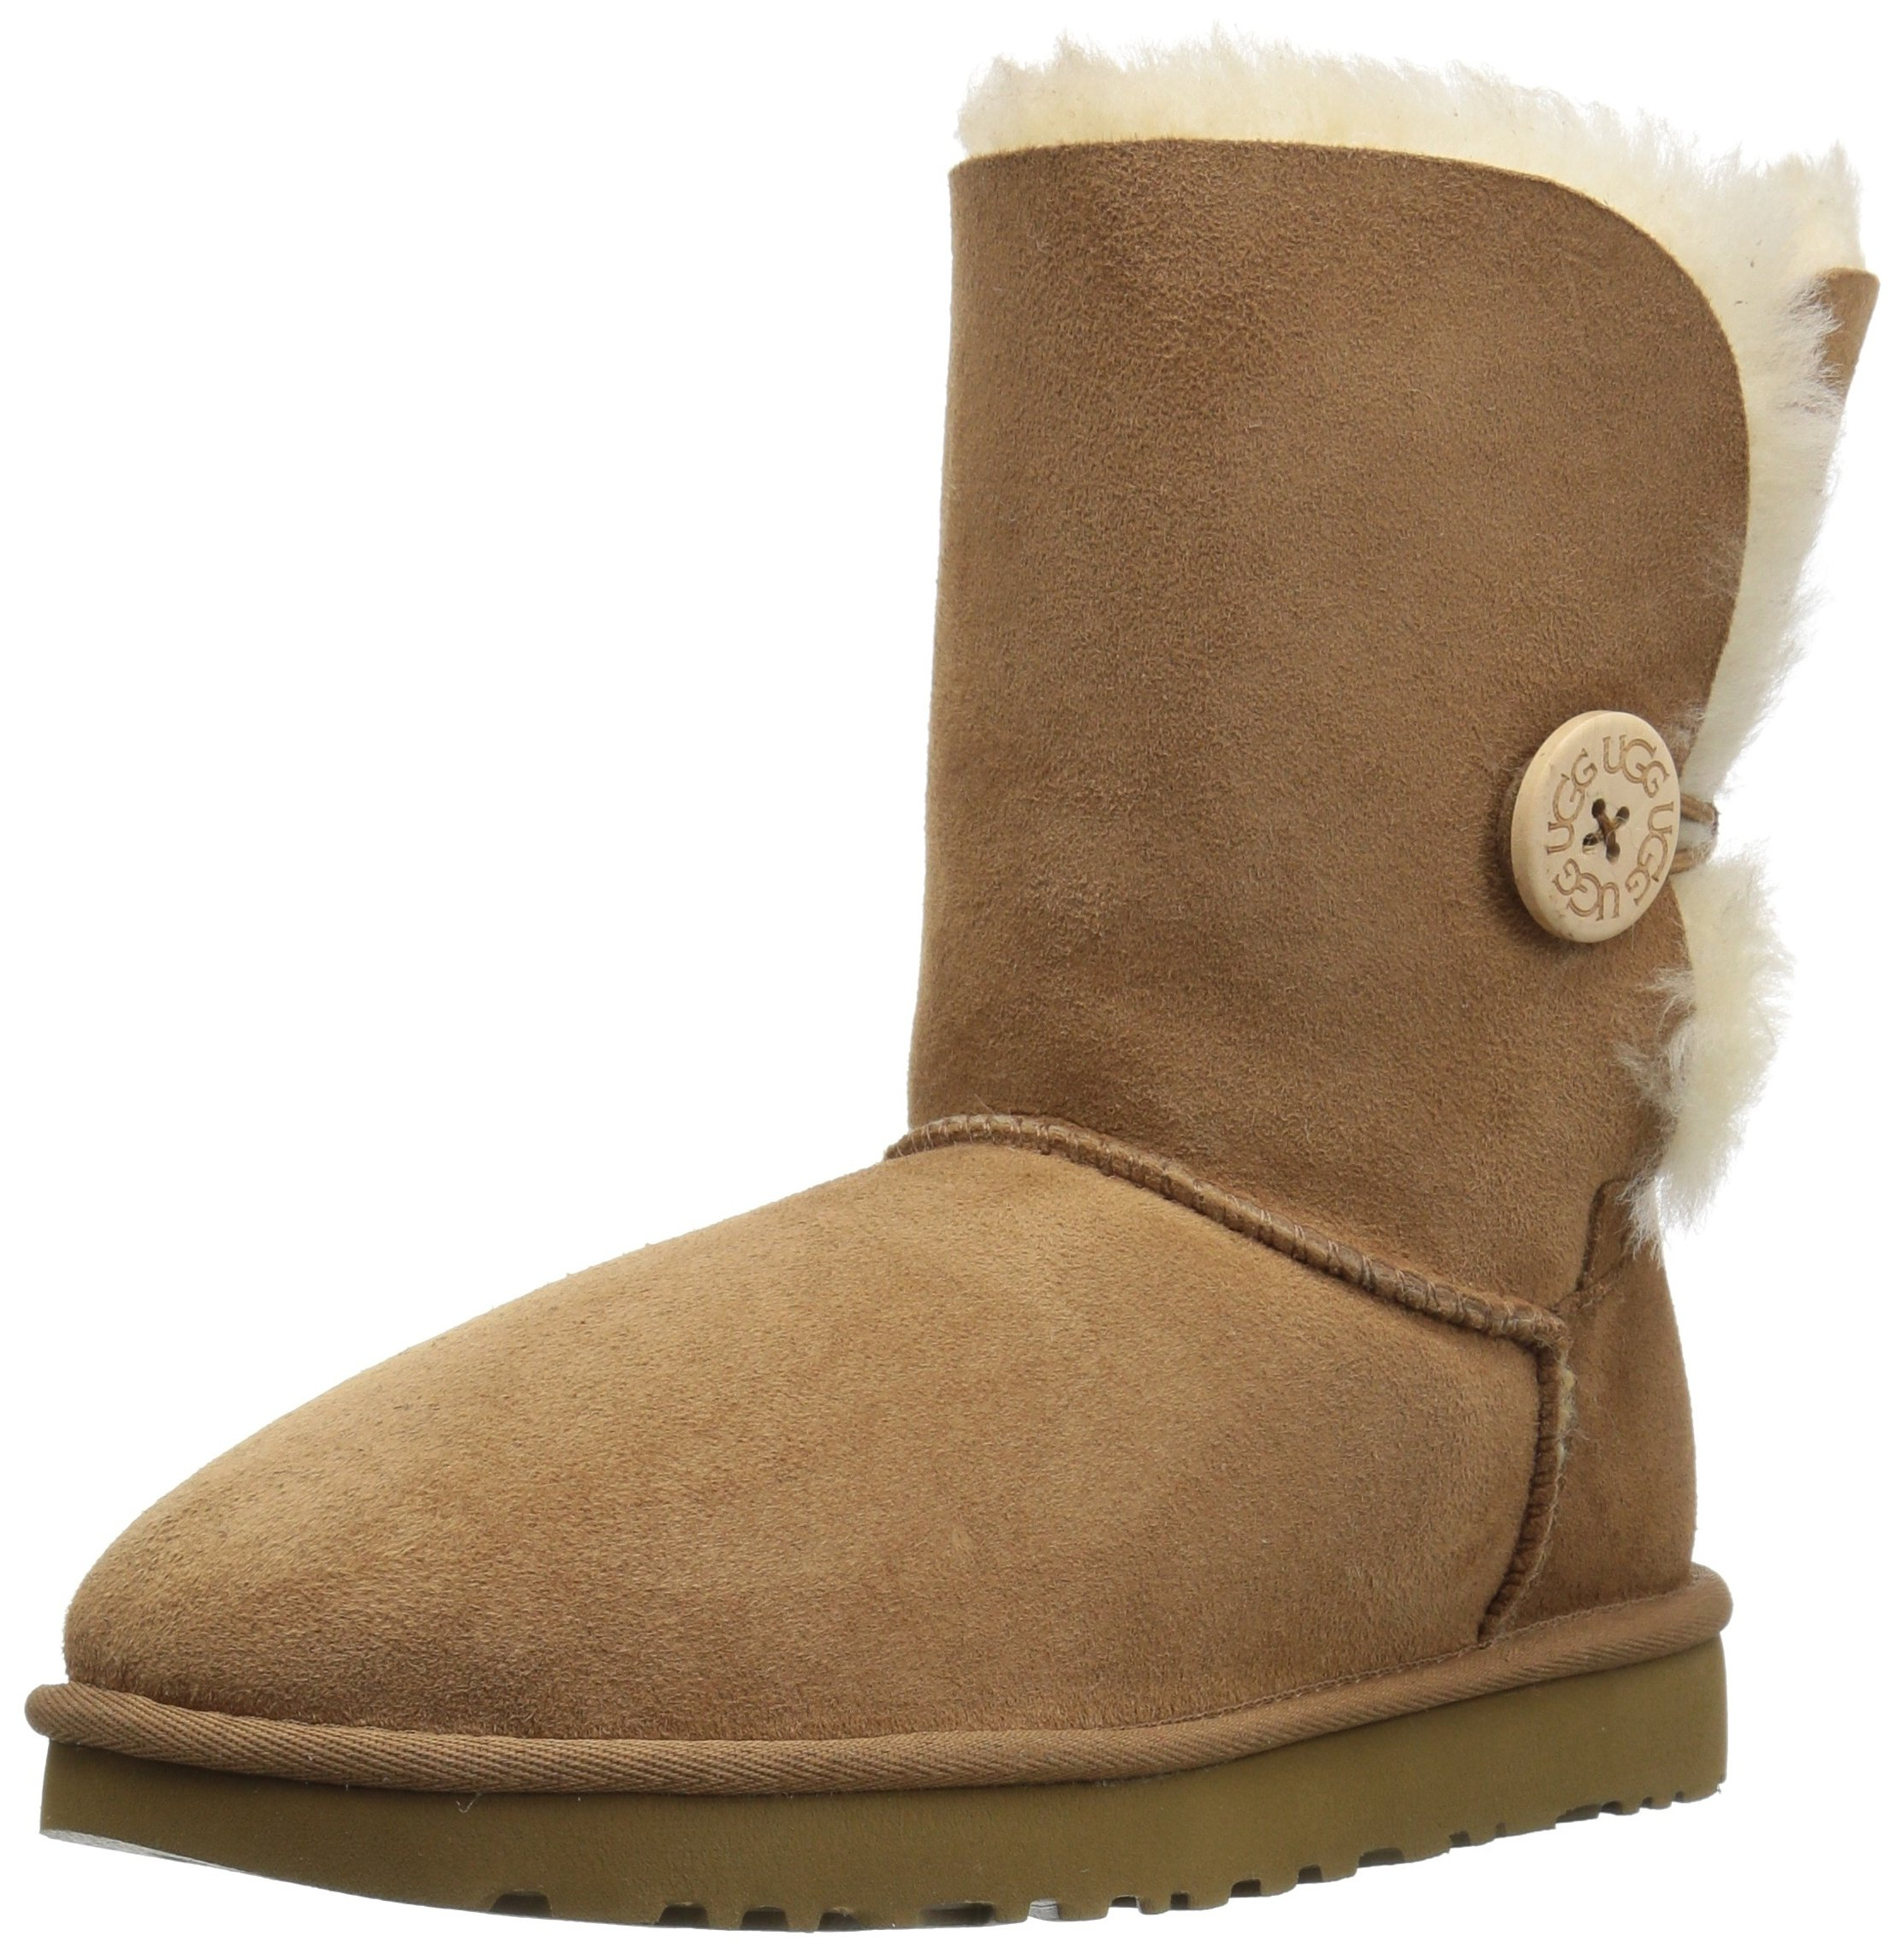 UGG Women's Bailey Button II Winter Boot, Chestnut, 5 B US